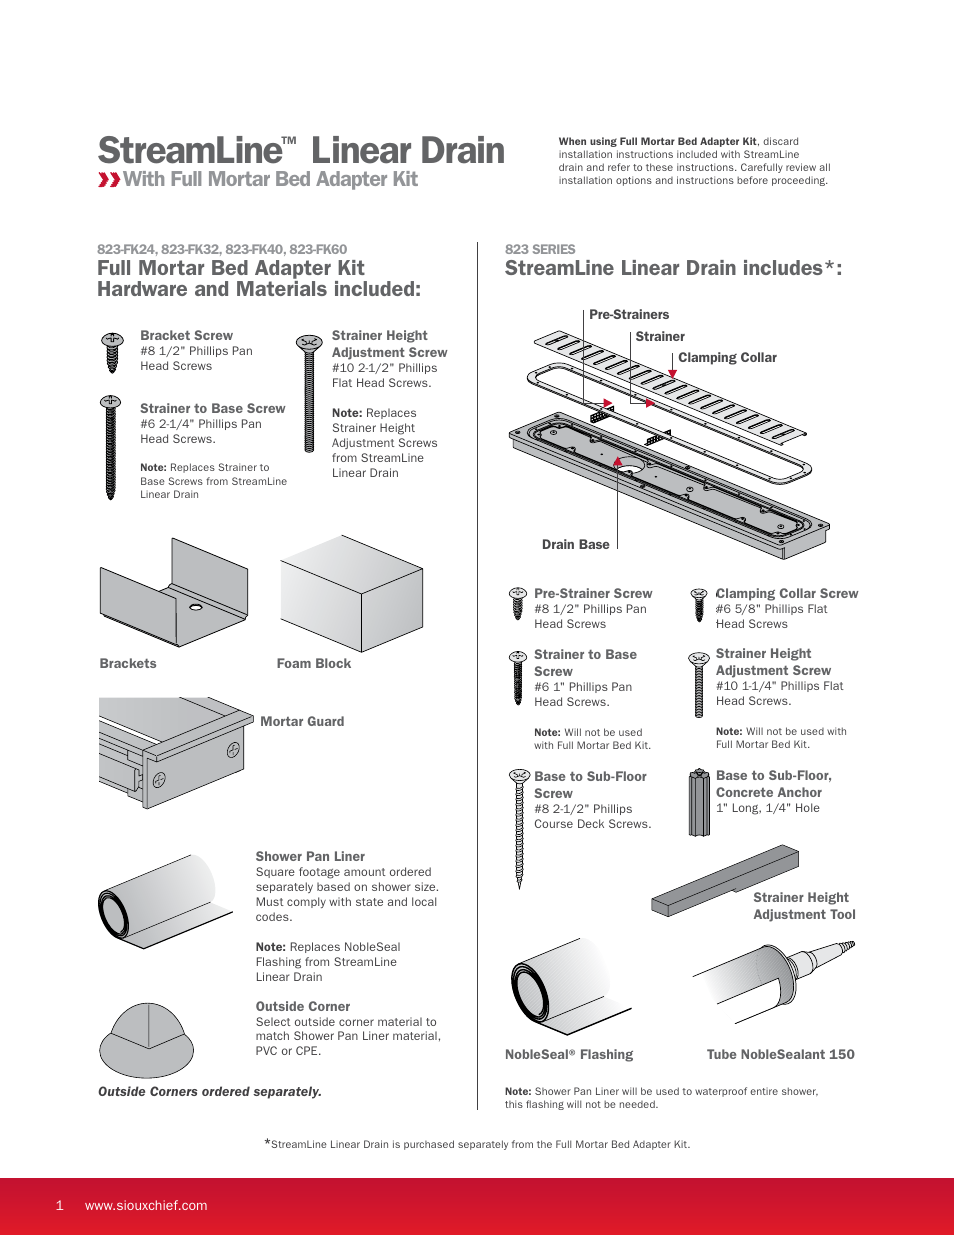 streamline linear drain streamline linear drain includes with full mortar bed adapter kit sioux chief linear shower drain streamline full mortar bed